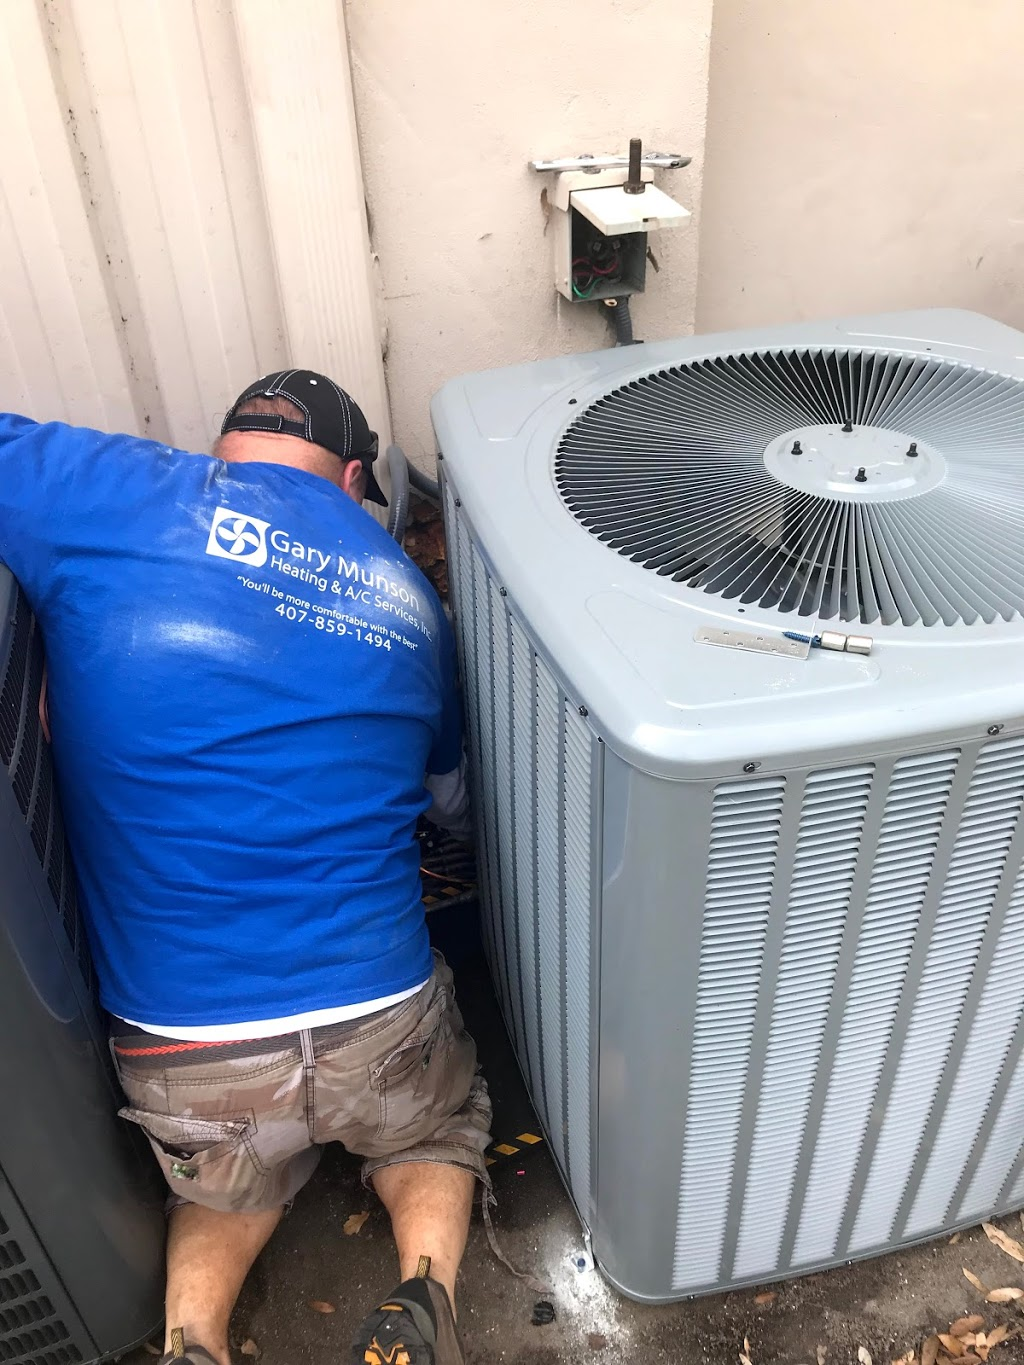 Gary Munson Heating & Air Conditioning - general contractor  | Photo 2 of 9 | Address: 2230 Curry Ford Rd Suite B, Orlando, FL 32806, USA | Phone: (407) 859-1494